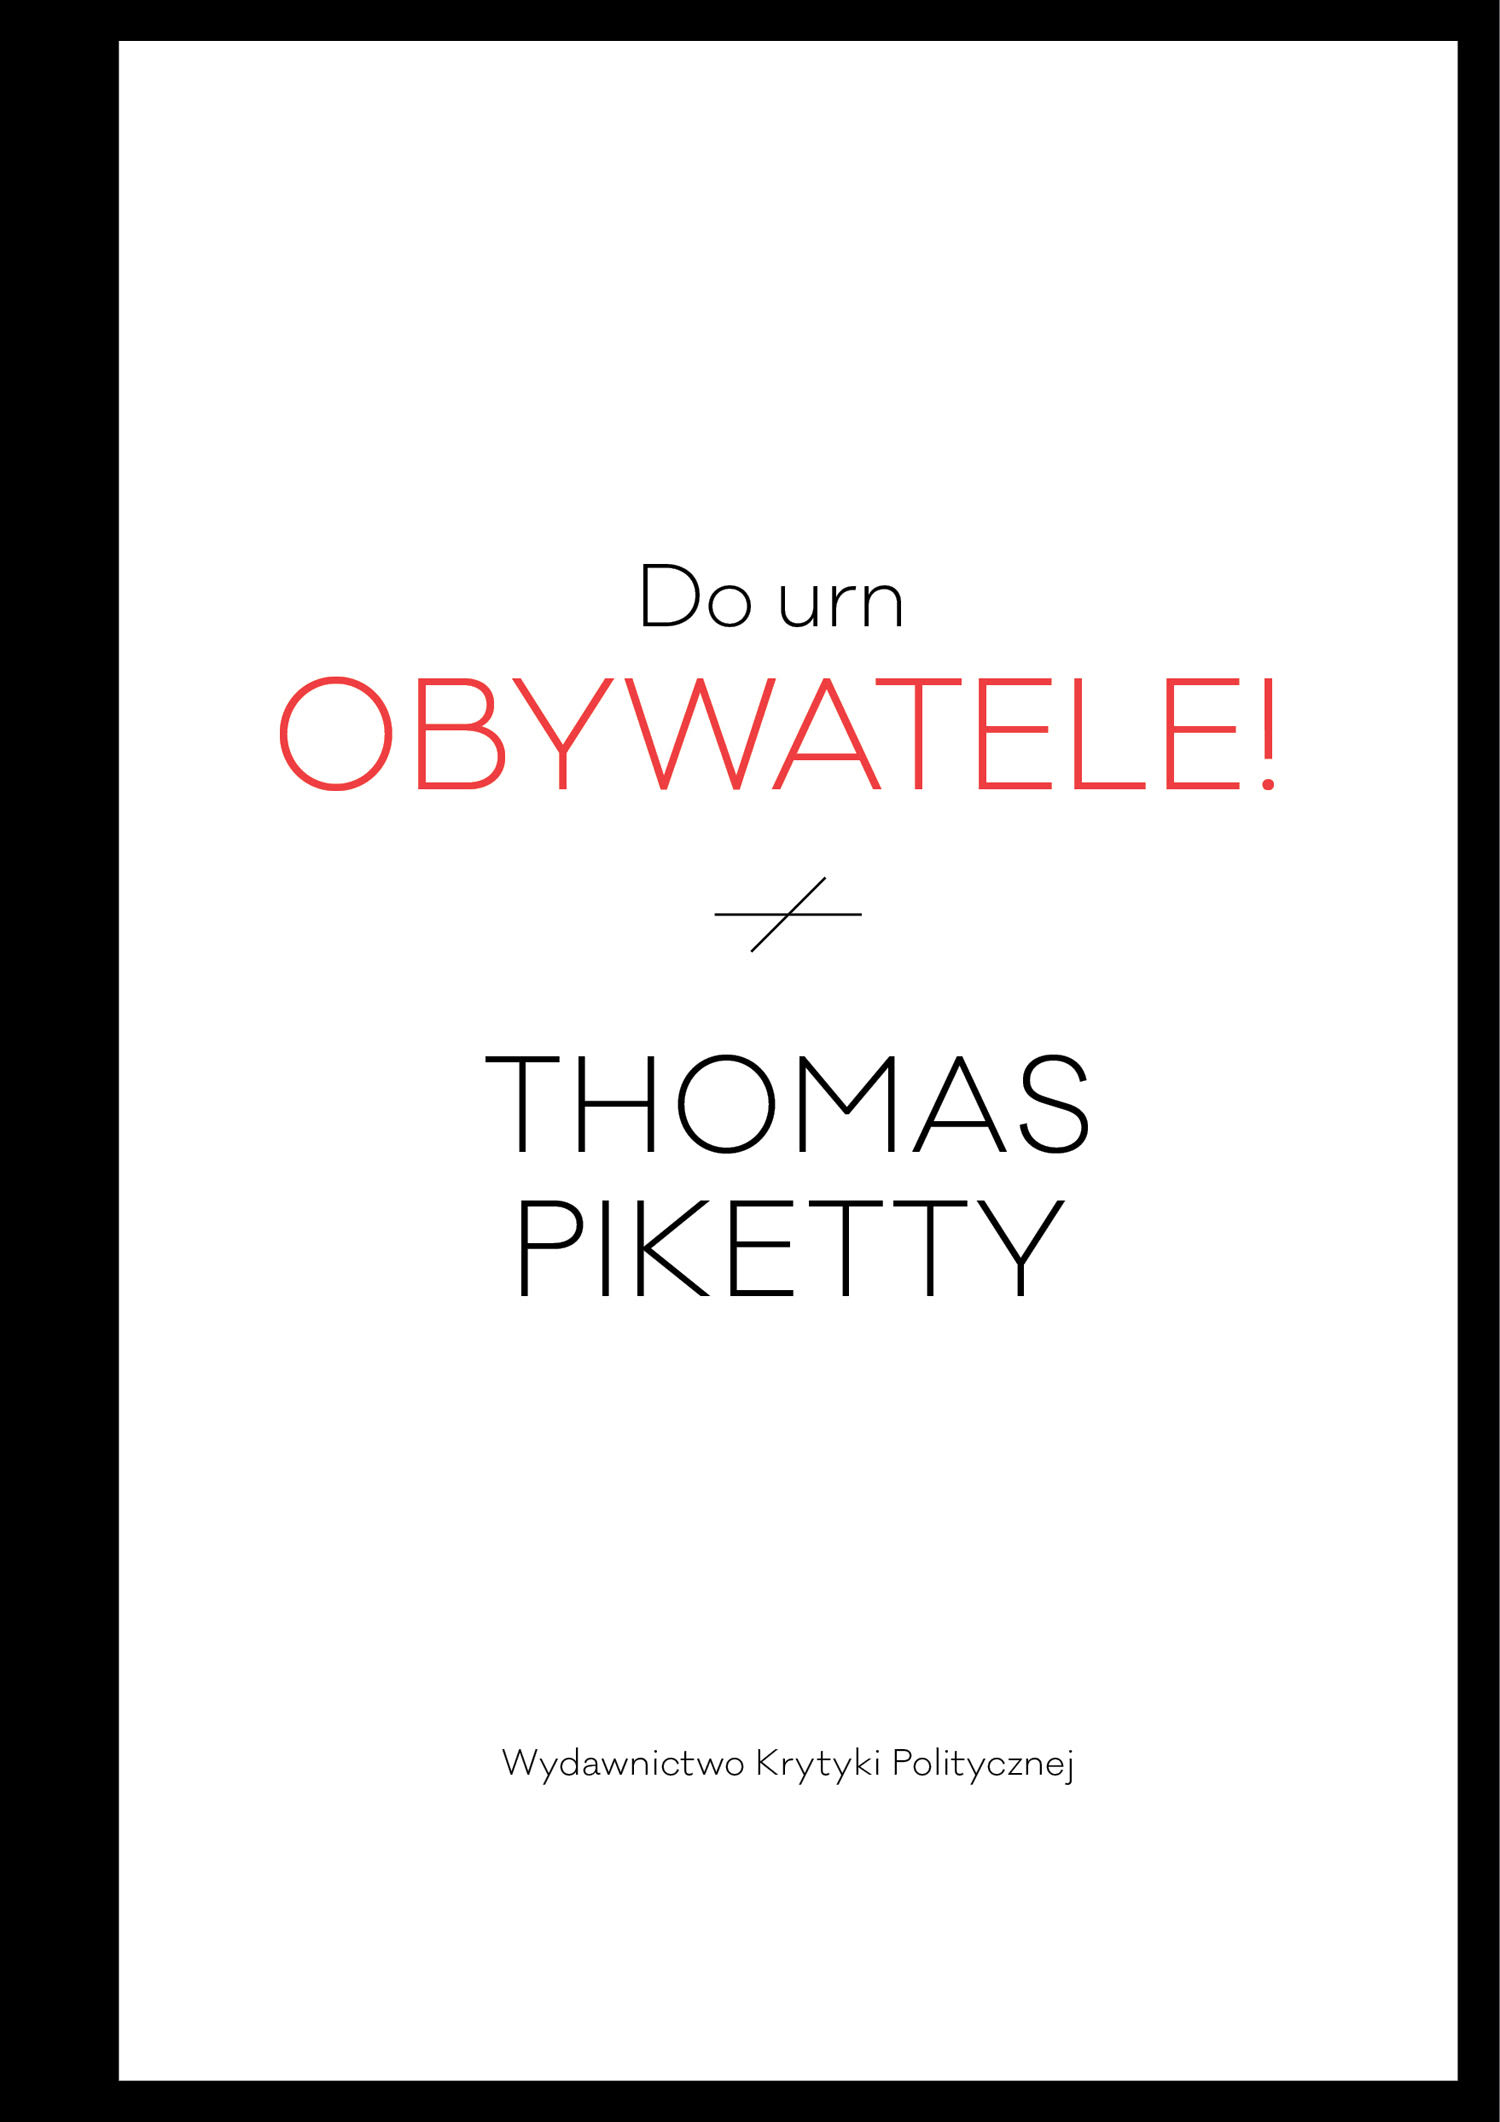 Thomas Piketty: Do urn, obywatele!